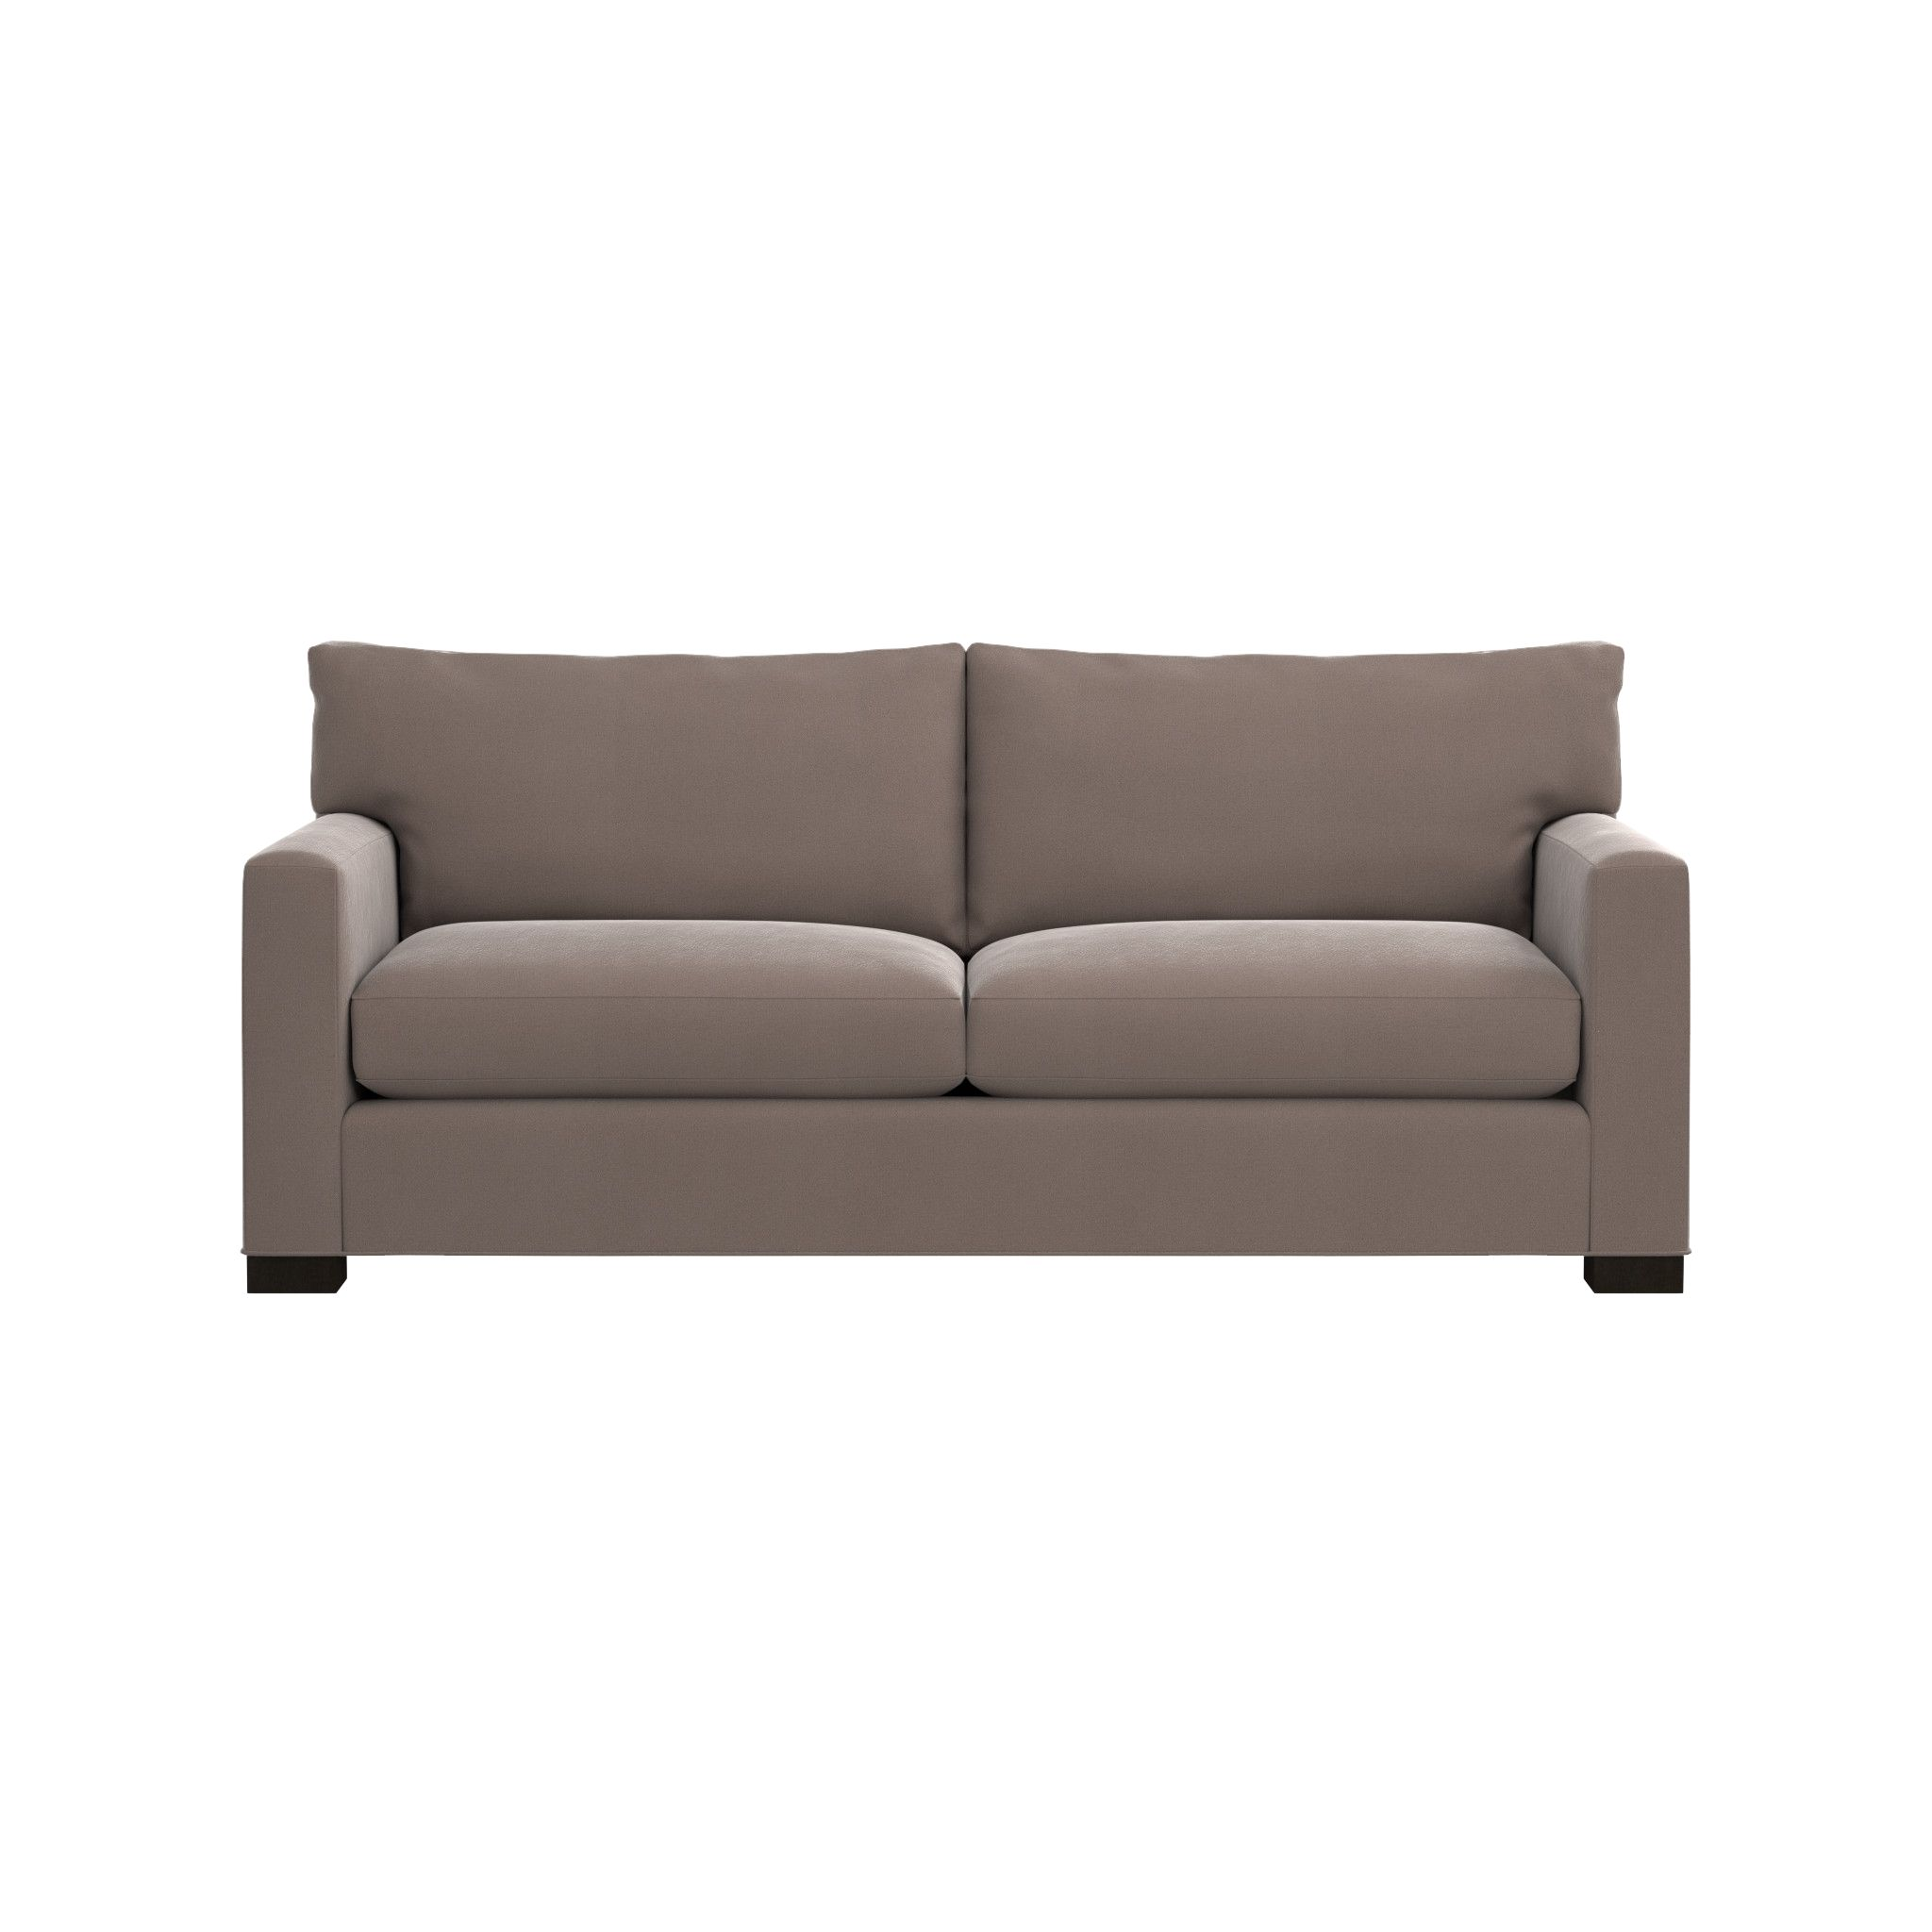 sofa cushion replacement service how to restuff leather cushions stuffing restuffing couch